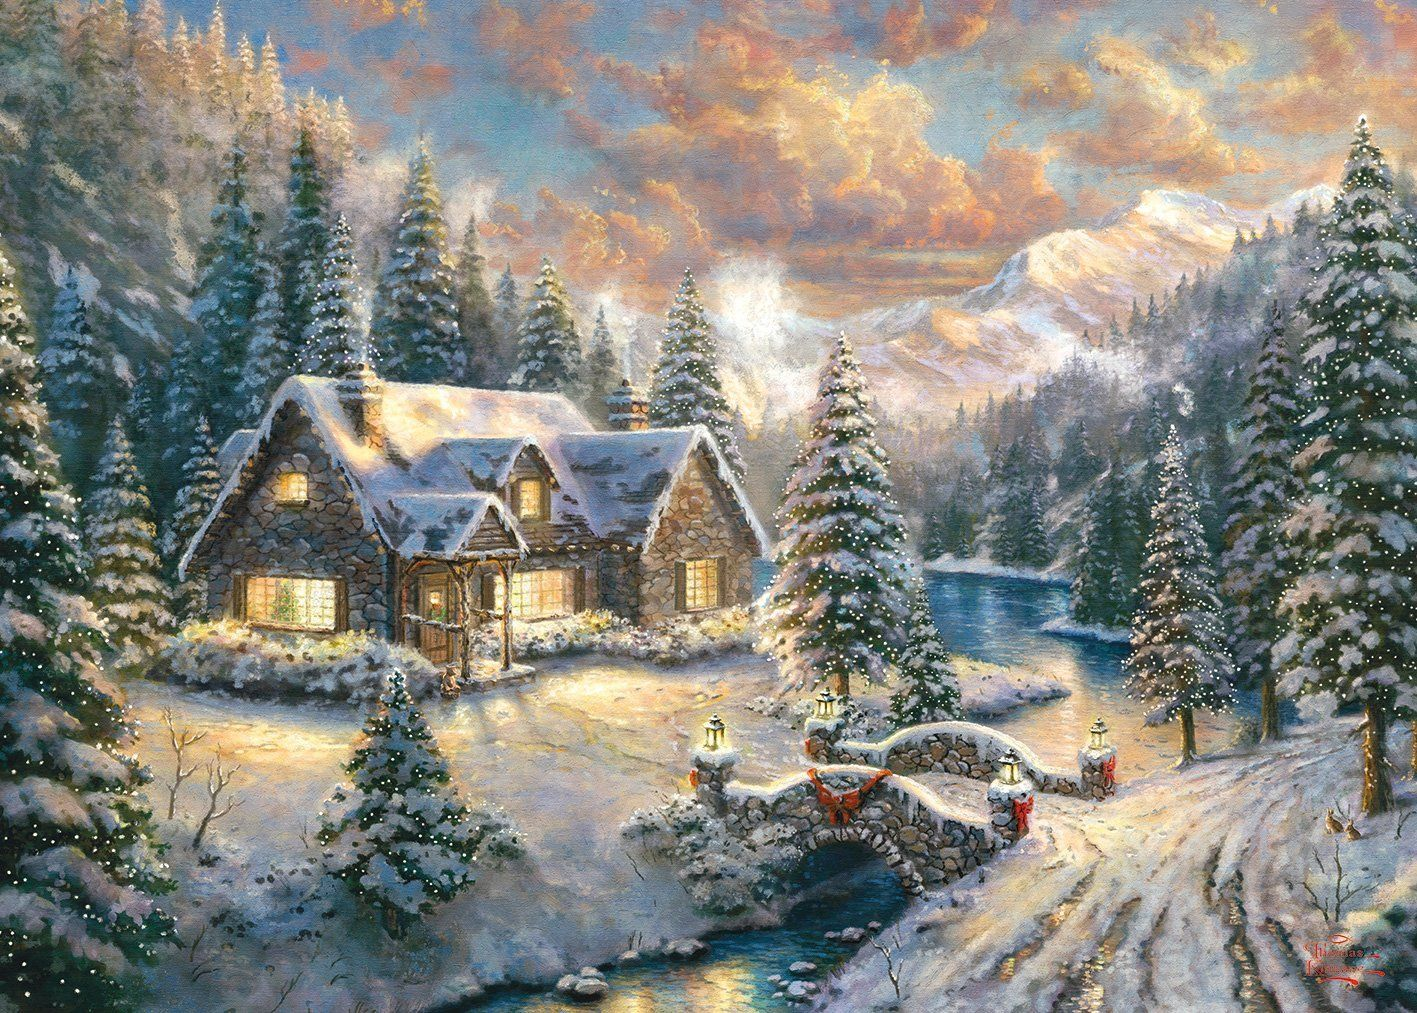 Thomas Kinkade: High Country Christmas | Weihnachtsbilder in 2018 ...